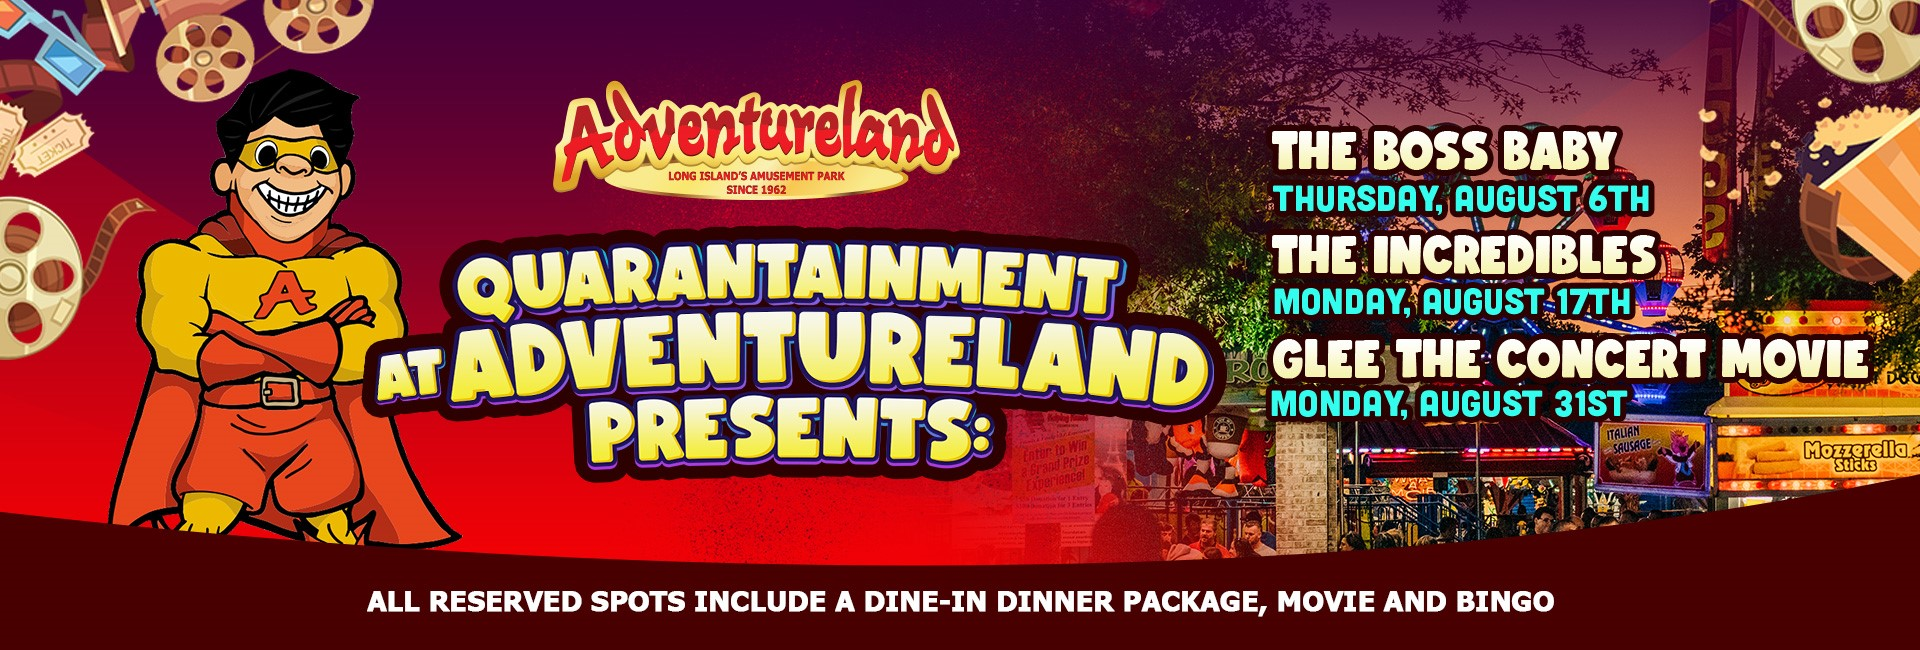 Quarantainment at Adventureland